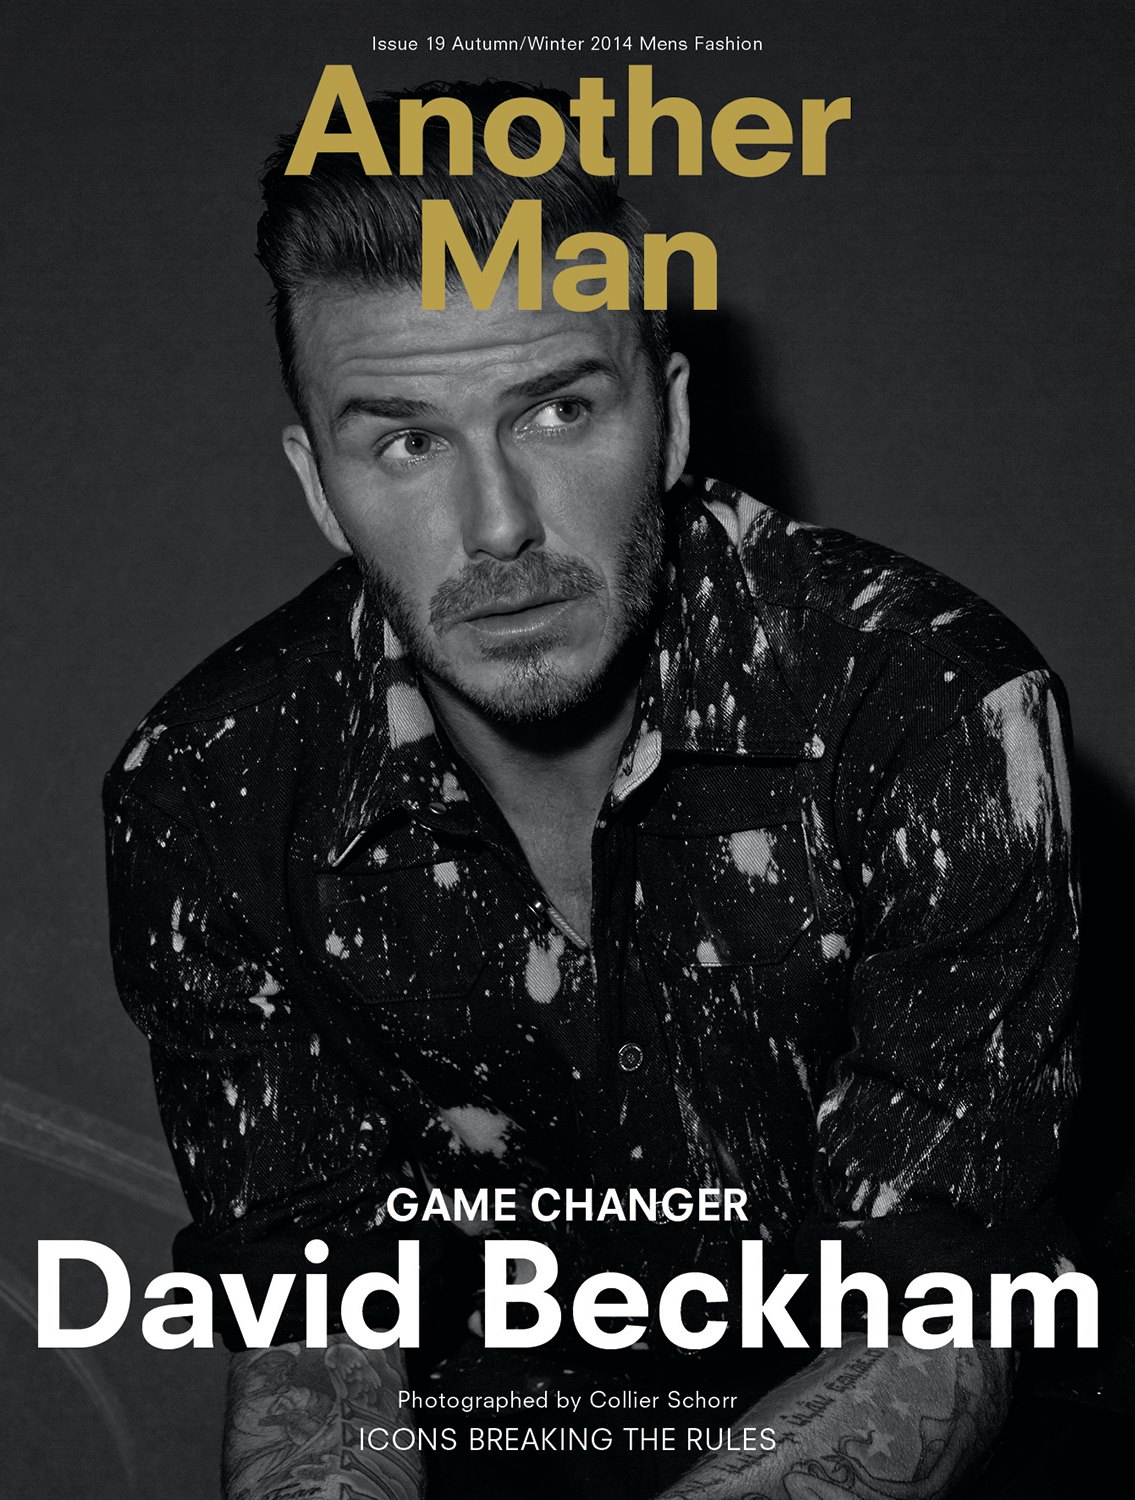 David Beckham Covers AnOther Man Fall/Winter 2014 Issue